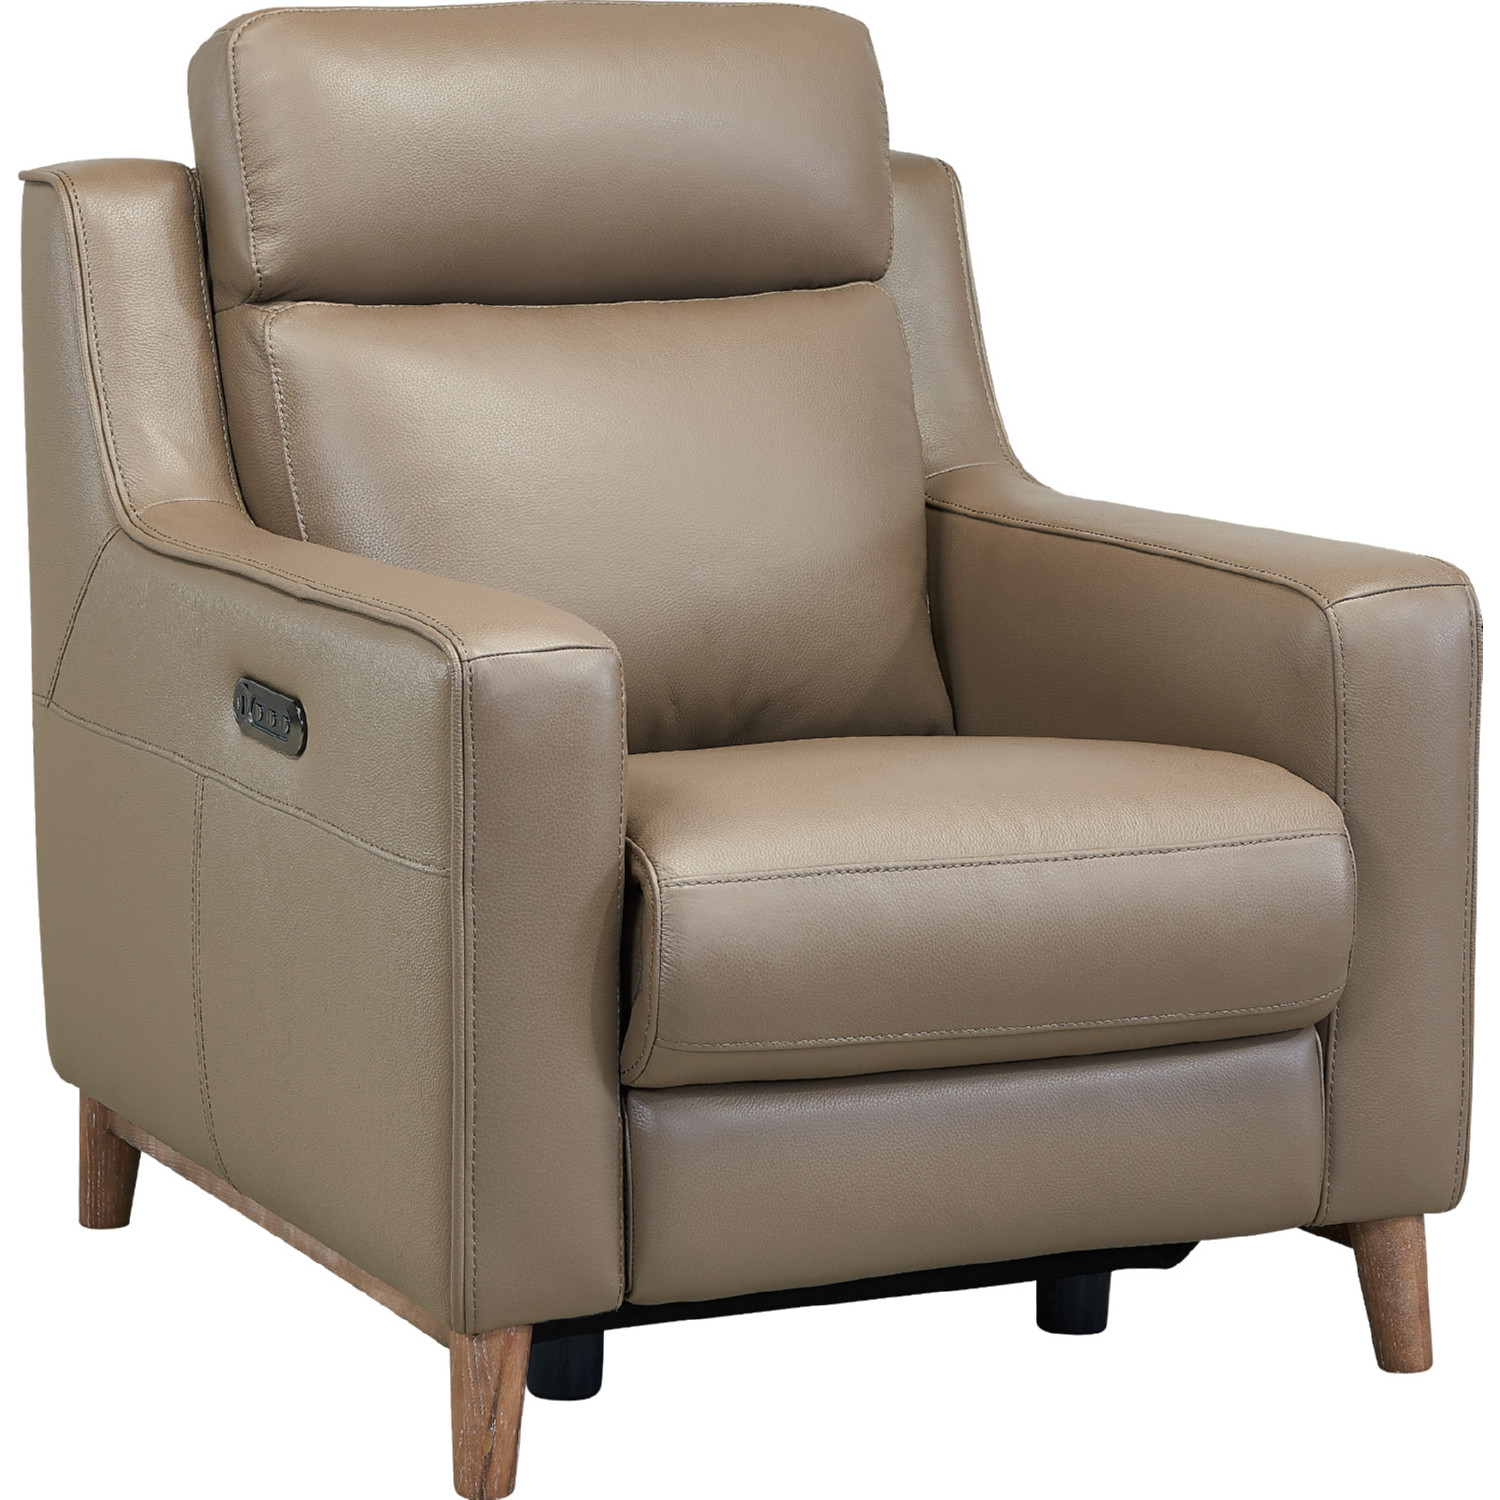 Awe Inspiring Wisteria Power Accent Chair Recliner In Taupe Leather Burlywood By Armen Living Dailytribune Chair Design For Home Dailytribuneorg